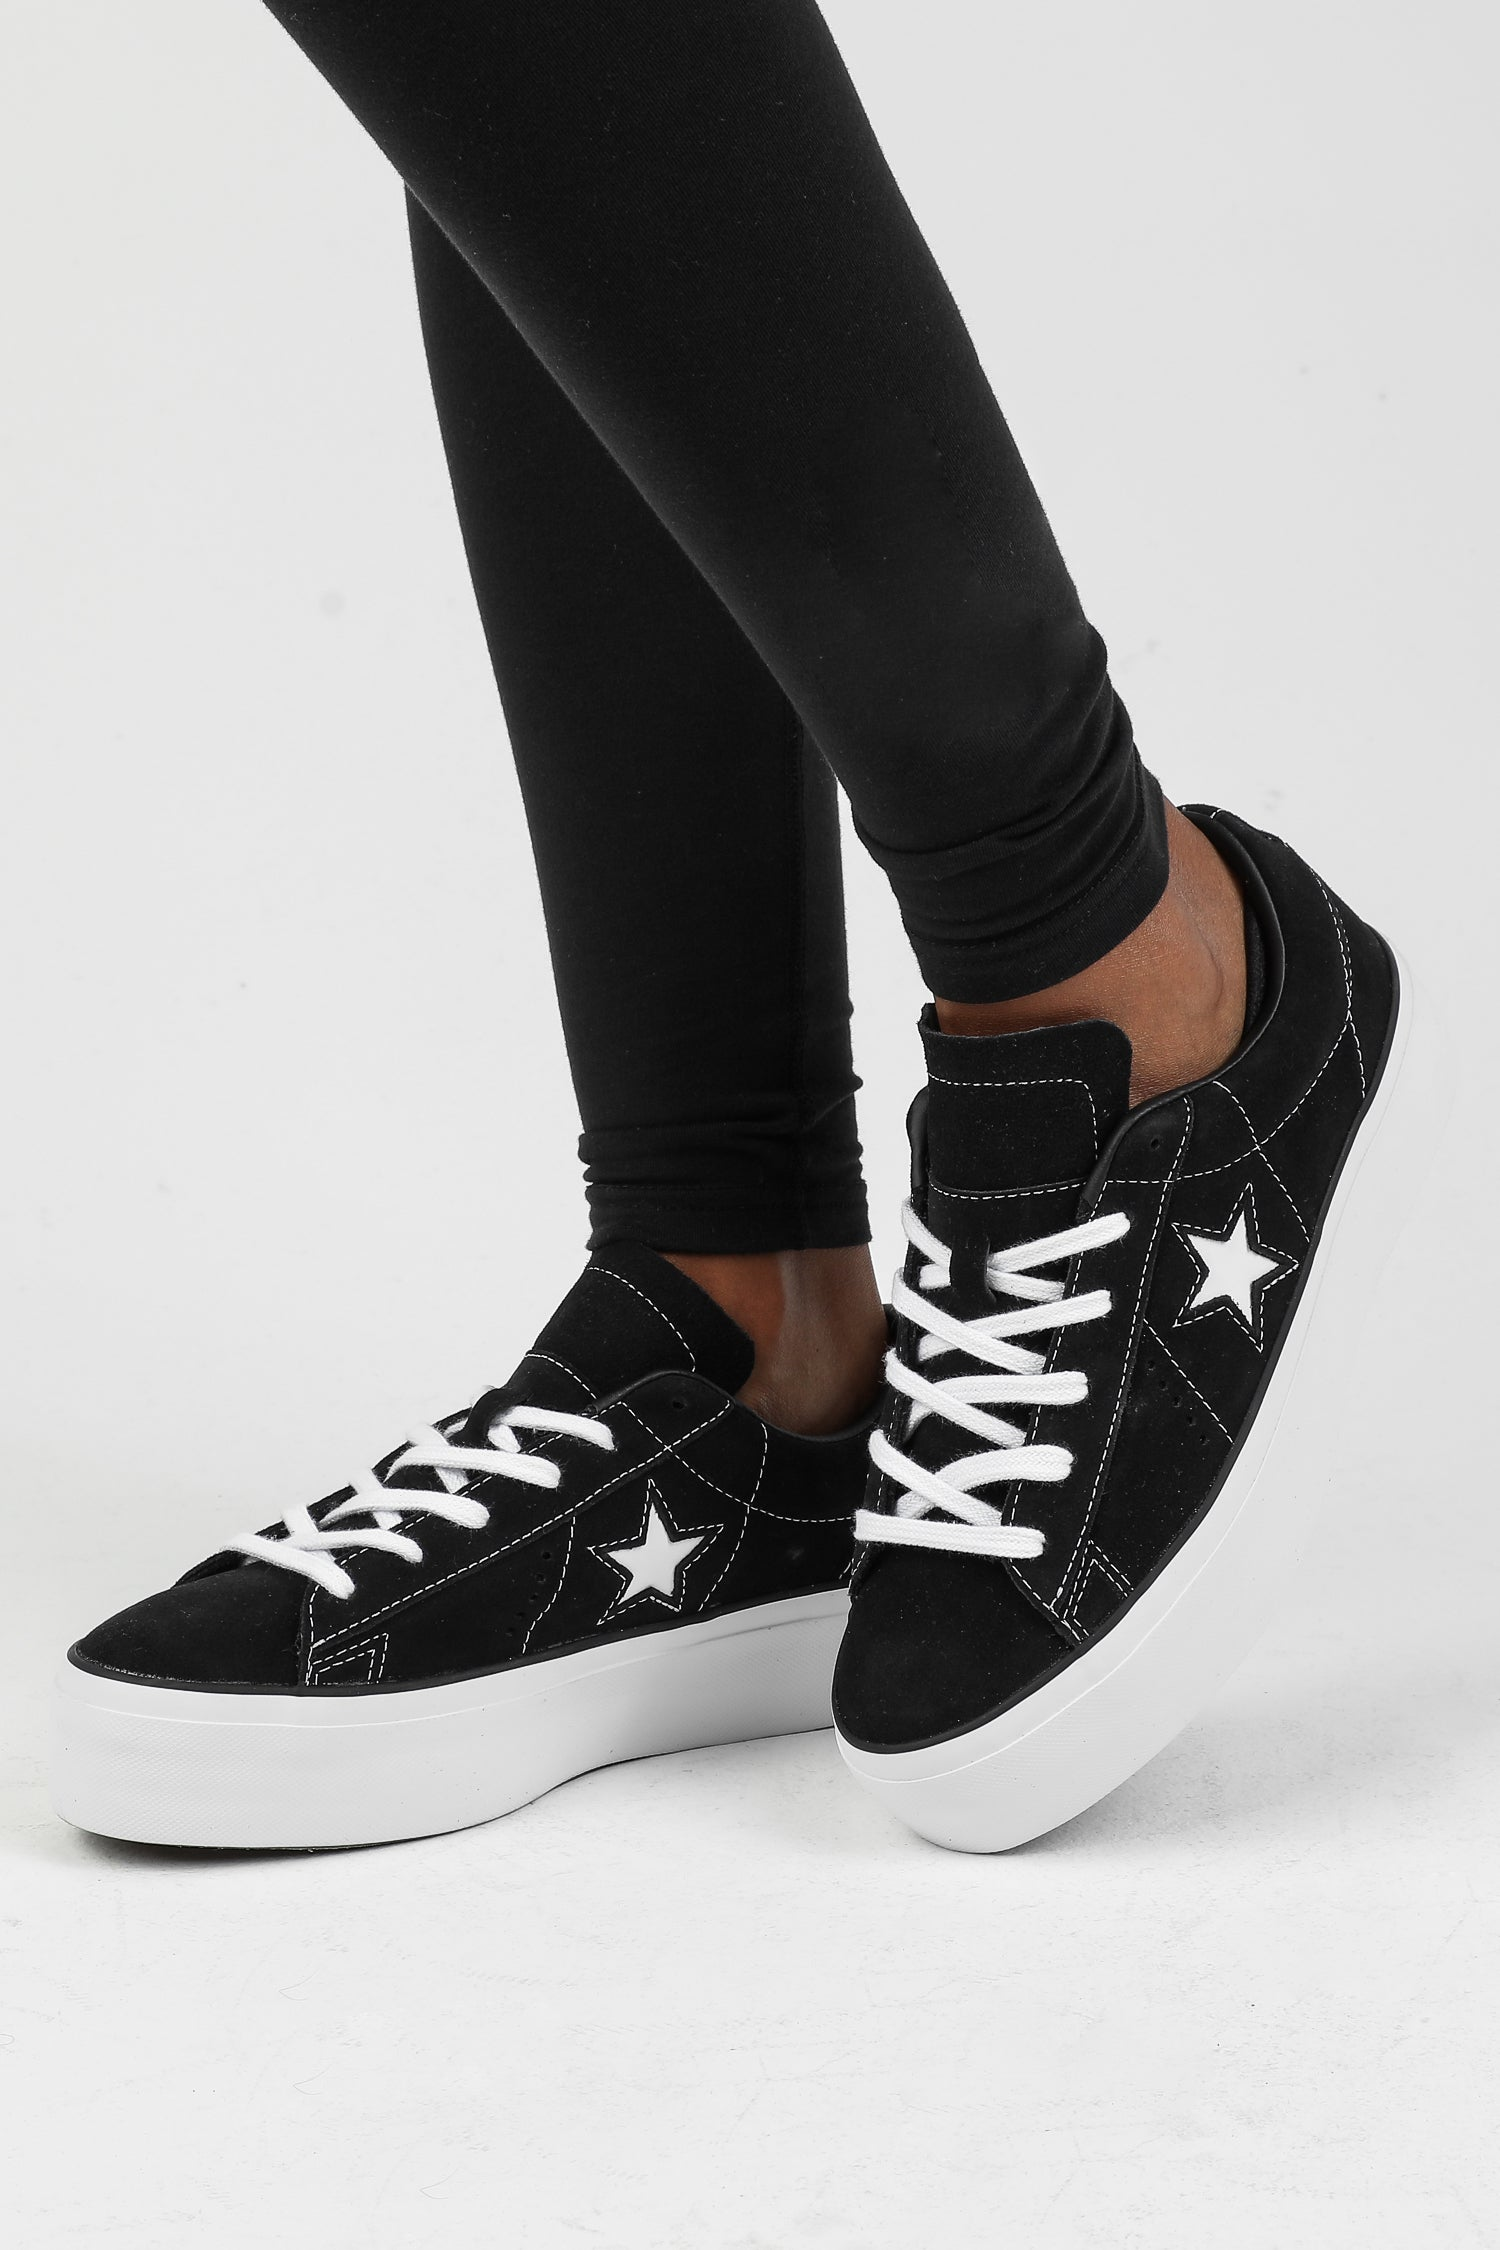 Check Out These Major Deals on Converse One Star platform